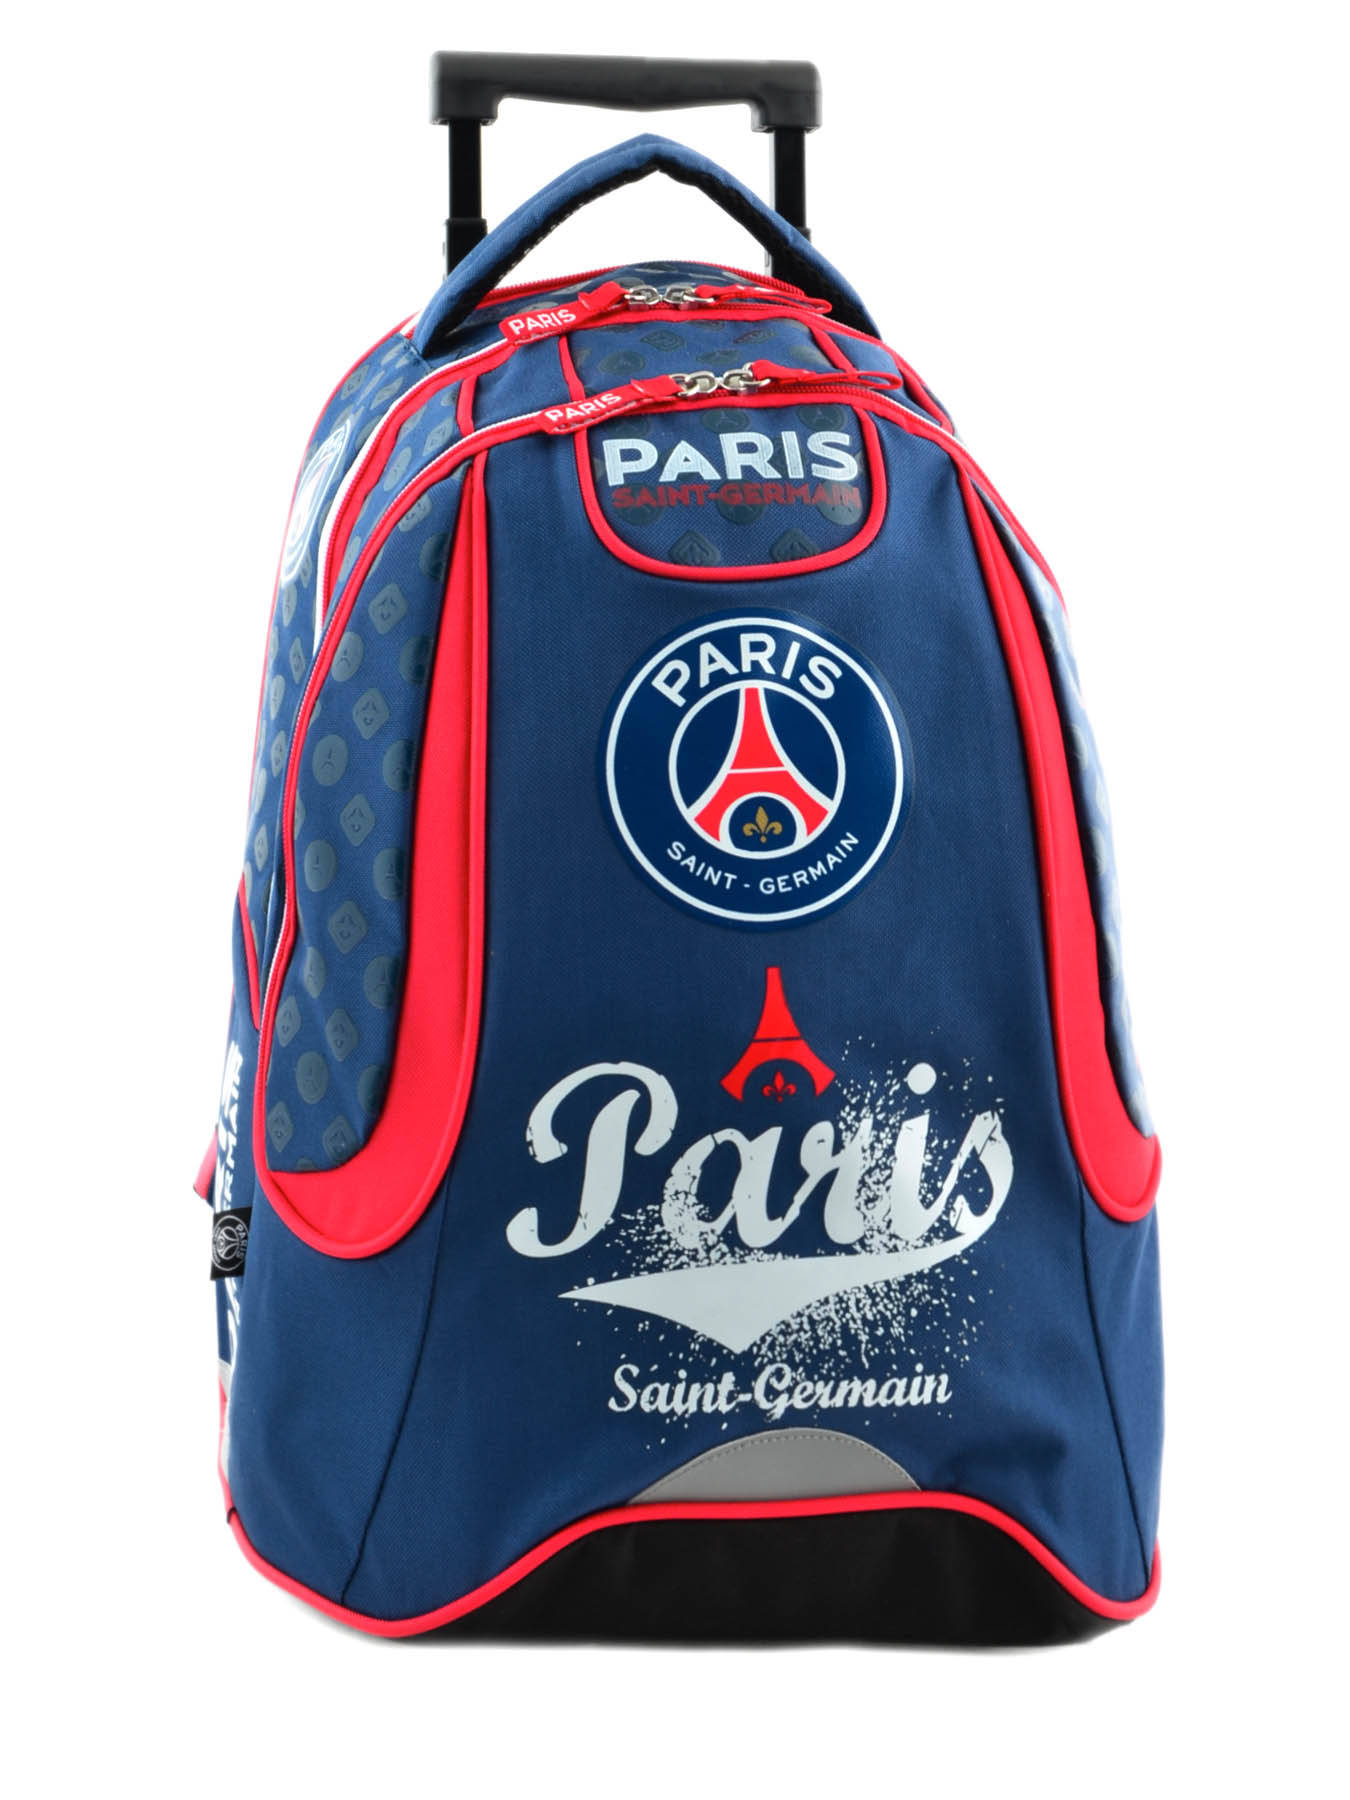 sac a dos roulettes paris st germain paris multicolor i en vente au meilleur prix. Black Bedroom Furniture Sets. Home Design Ideas